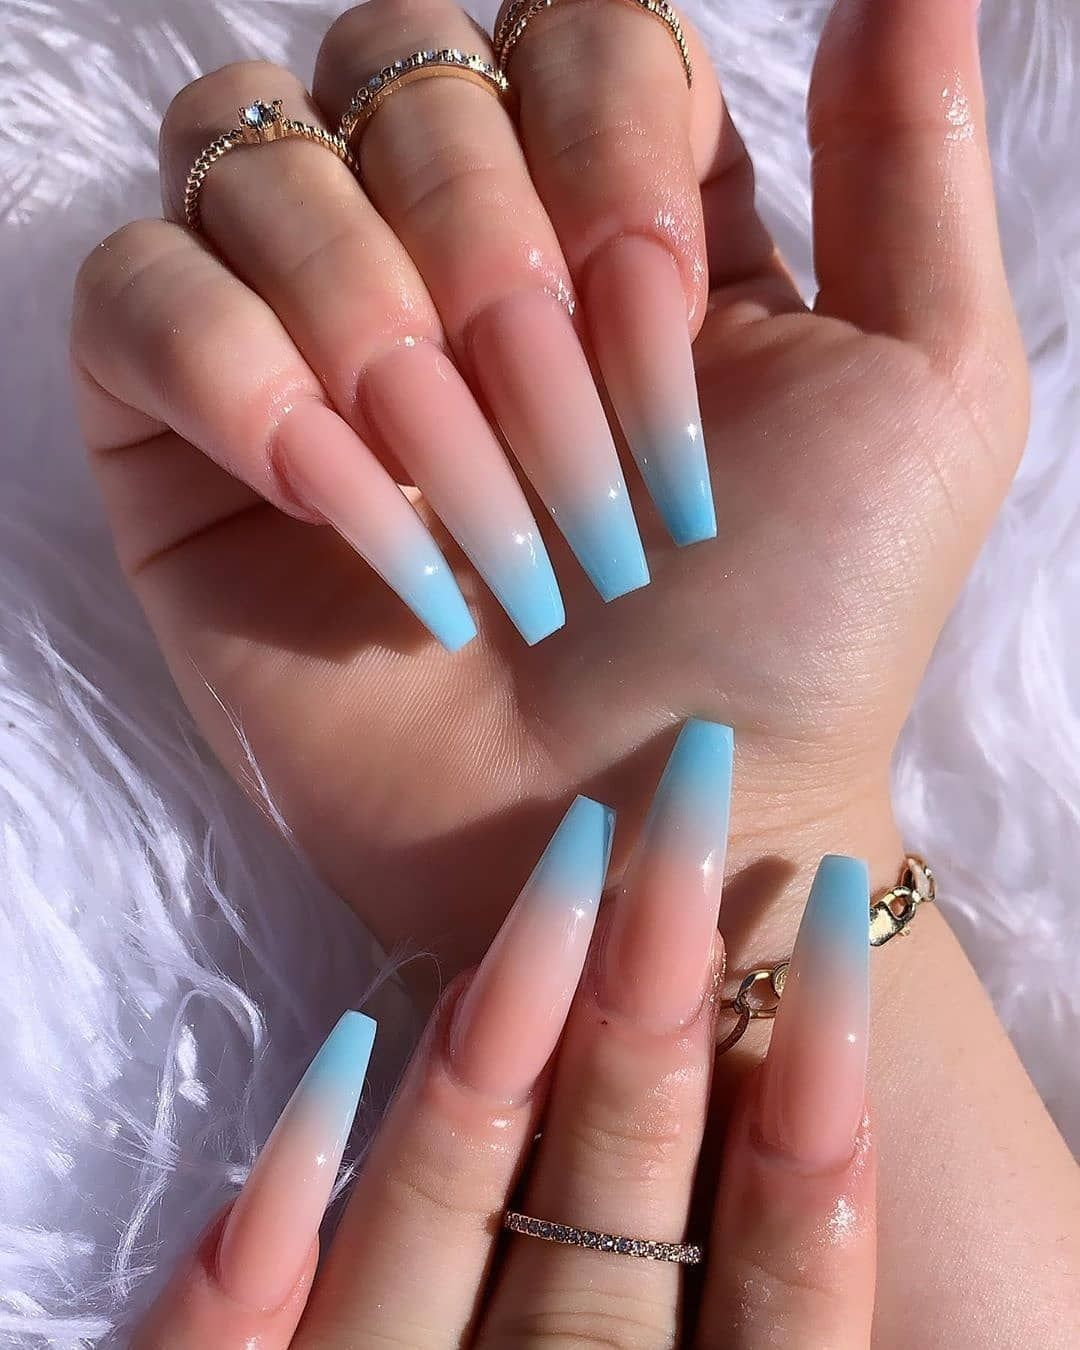 Nailartists Worldwide On Instagram Pretty Nails 1 2 3 4 5 6 7 8 Or 9 Follow Nailartis In 2020 Blue Ombre Nails Ombre Acrylic Nails Acrylic Nails Coffin Ombre